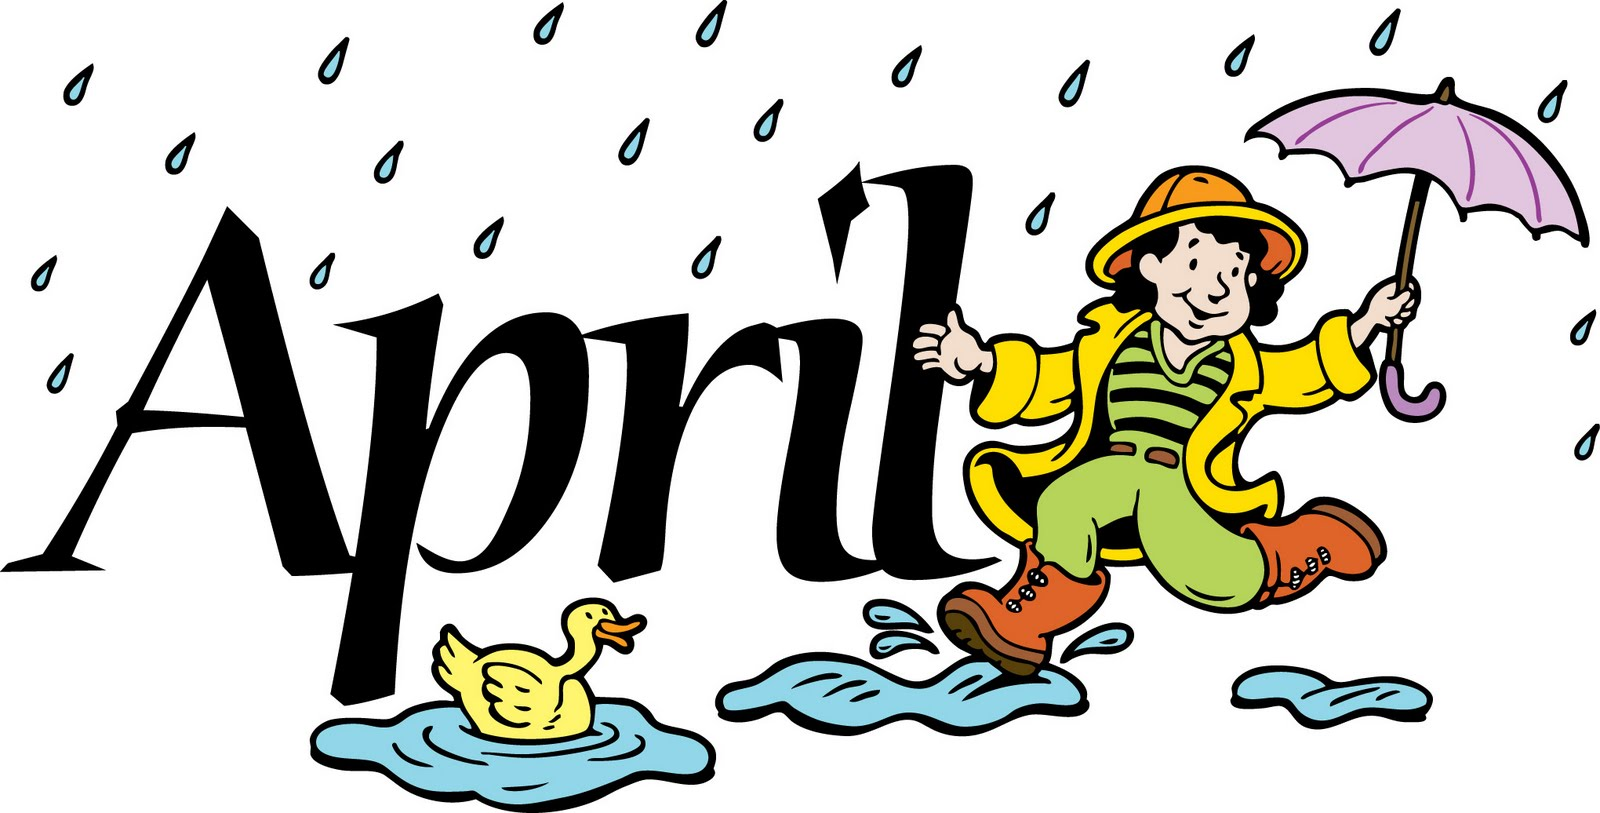 Free month of april clipart picture royalty free Free April Cliparts, Download Free Clip Art, Free Clip Art on ... picture royalty free